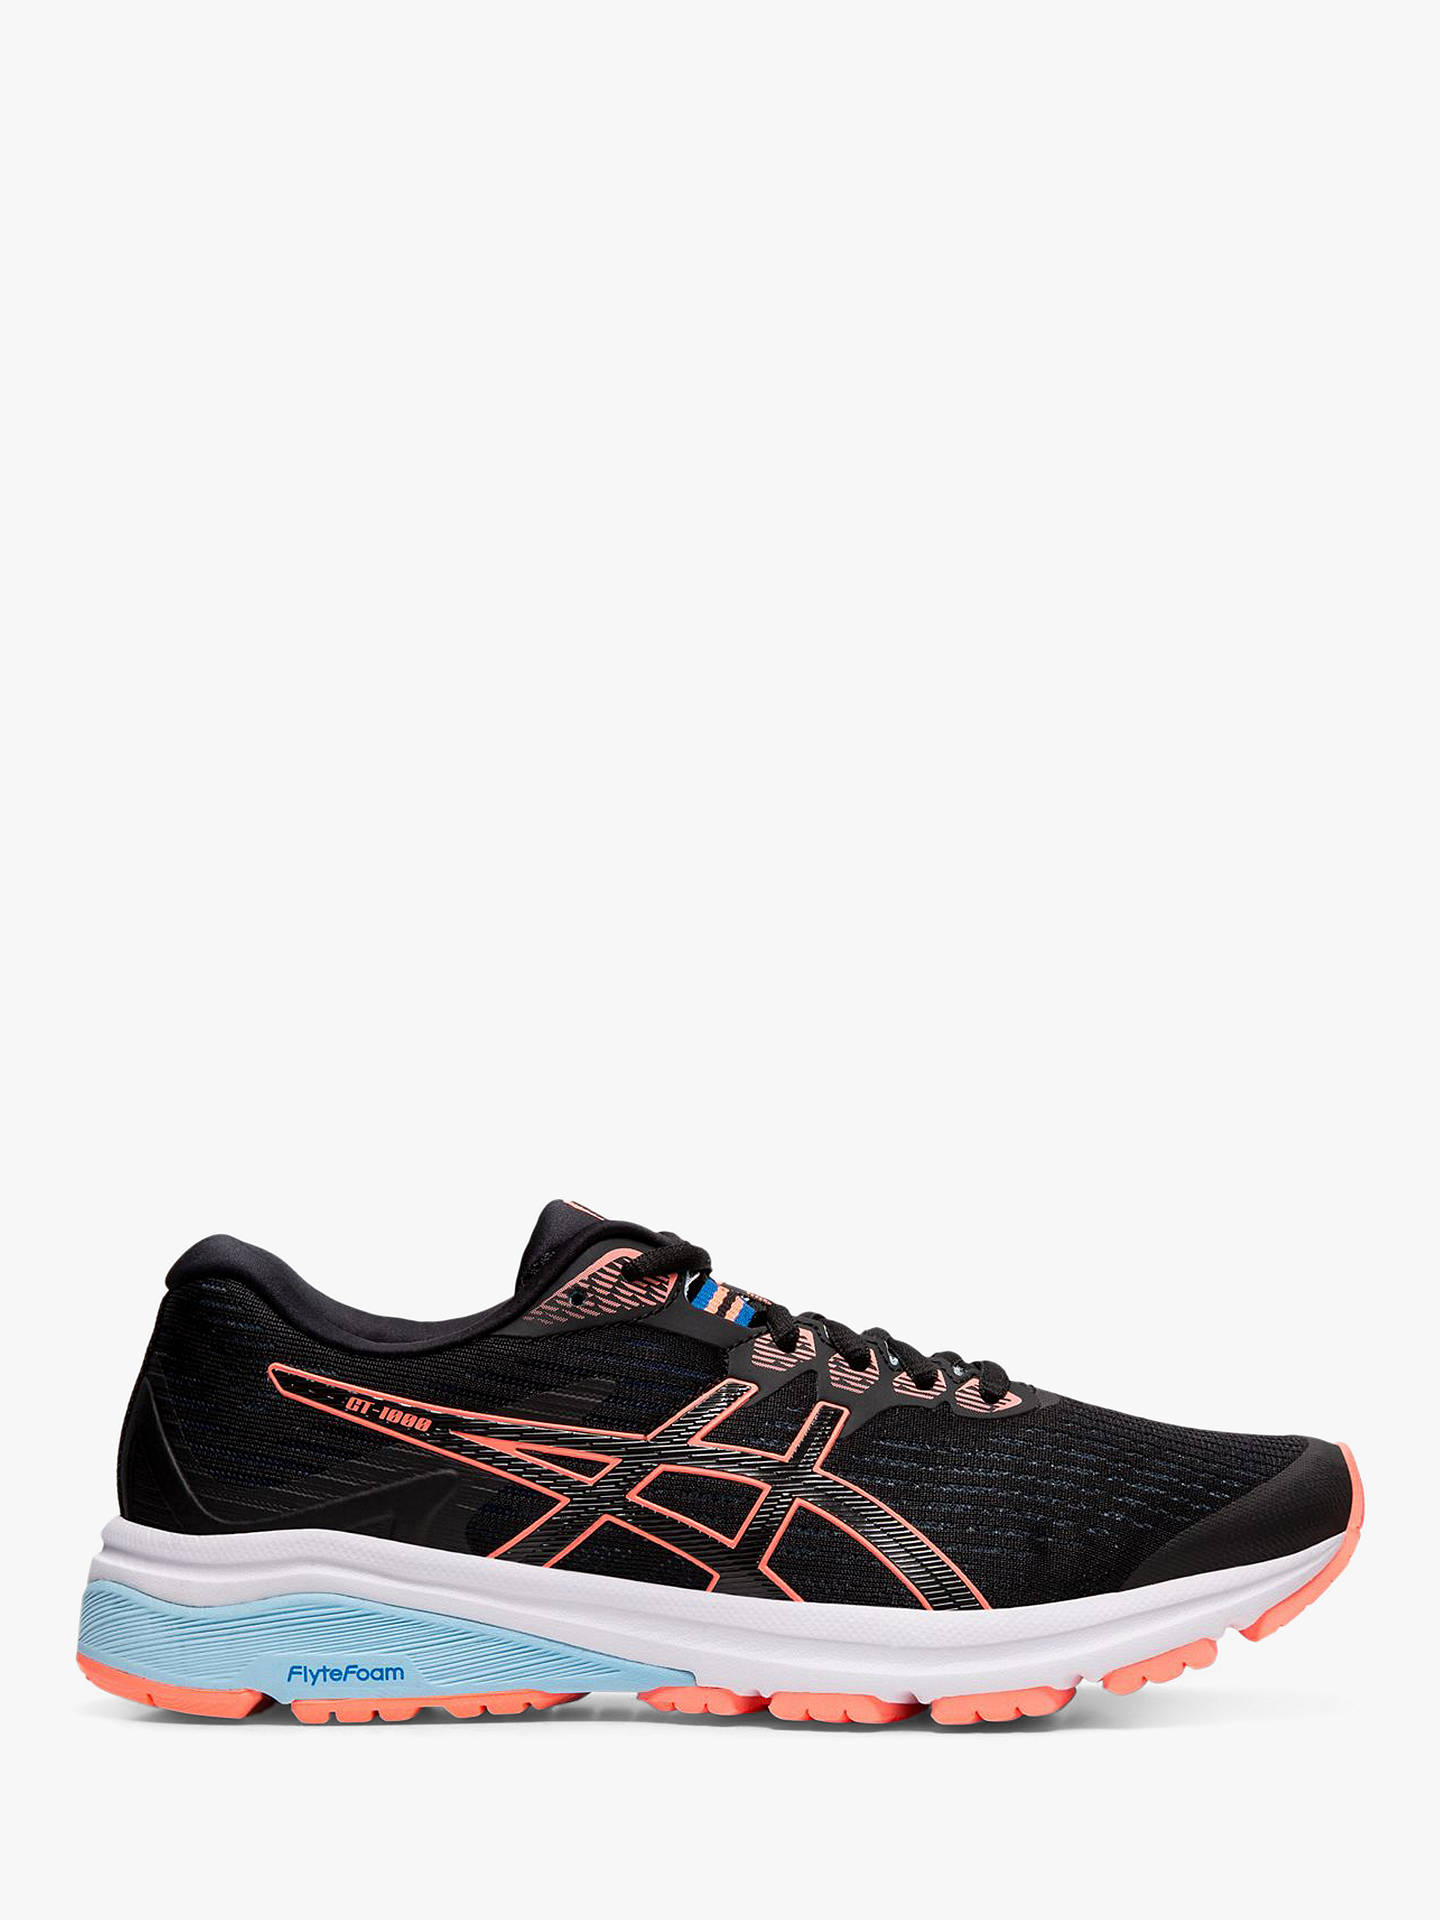 new style 62e05 a9e89 ASICS GT-1000 8 Women's Running Shoes, Black/Sun Coral